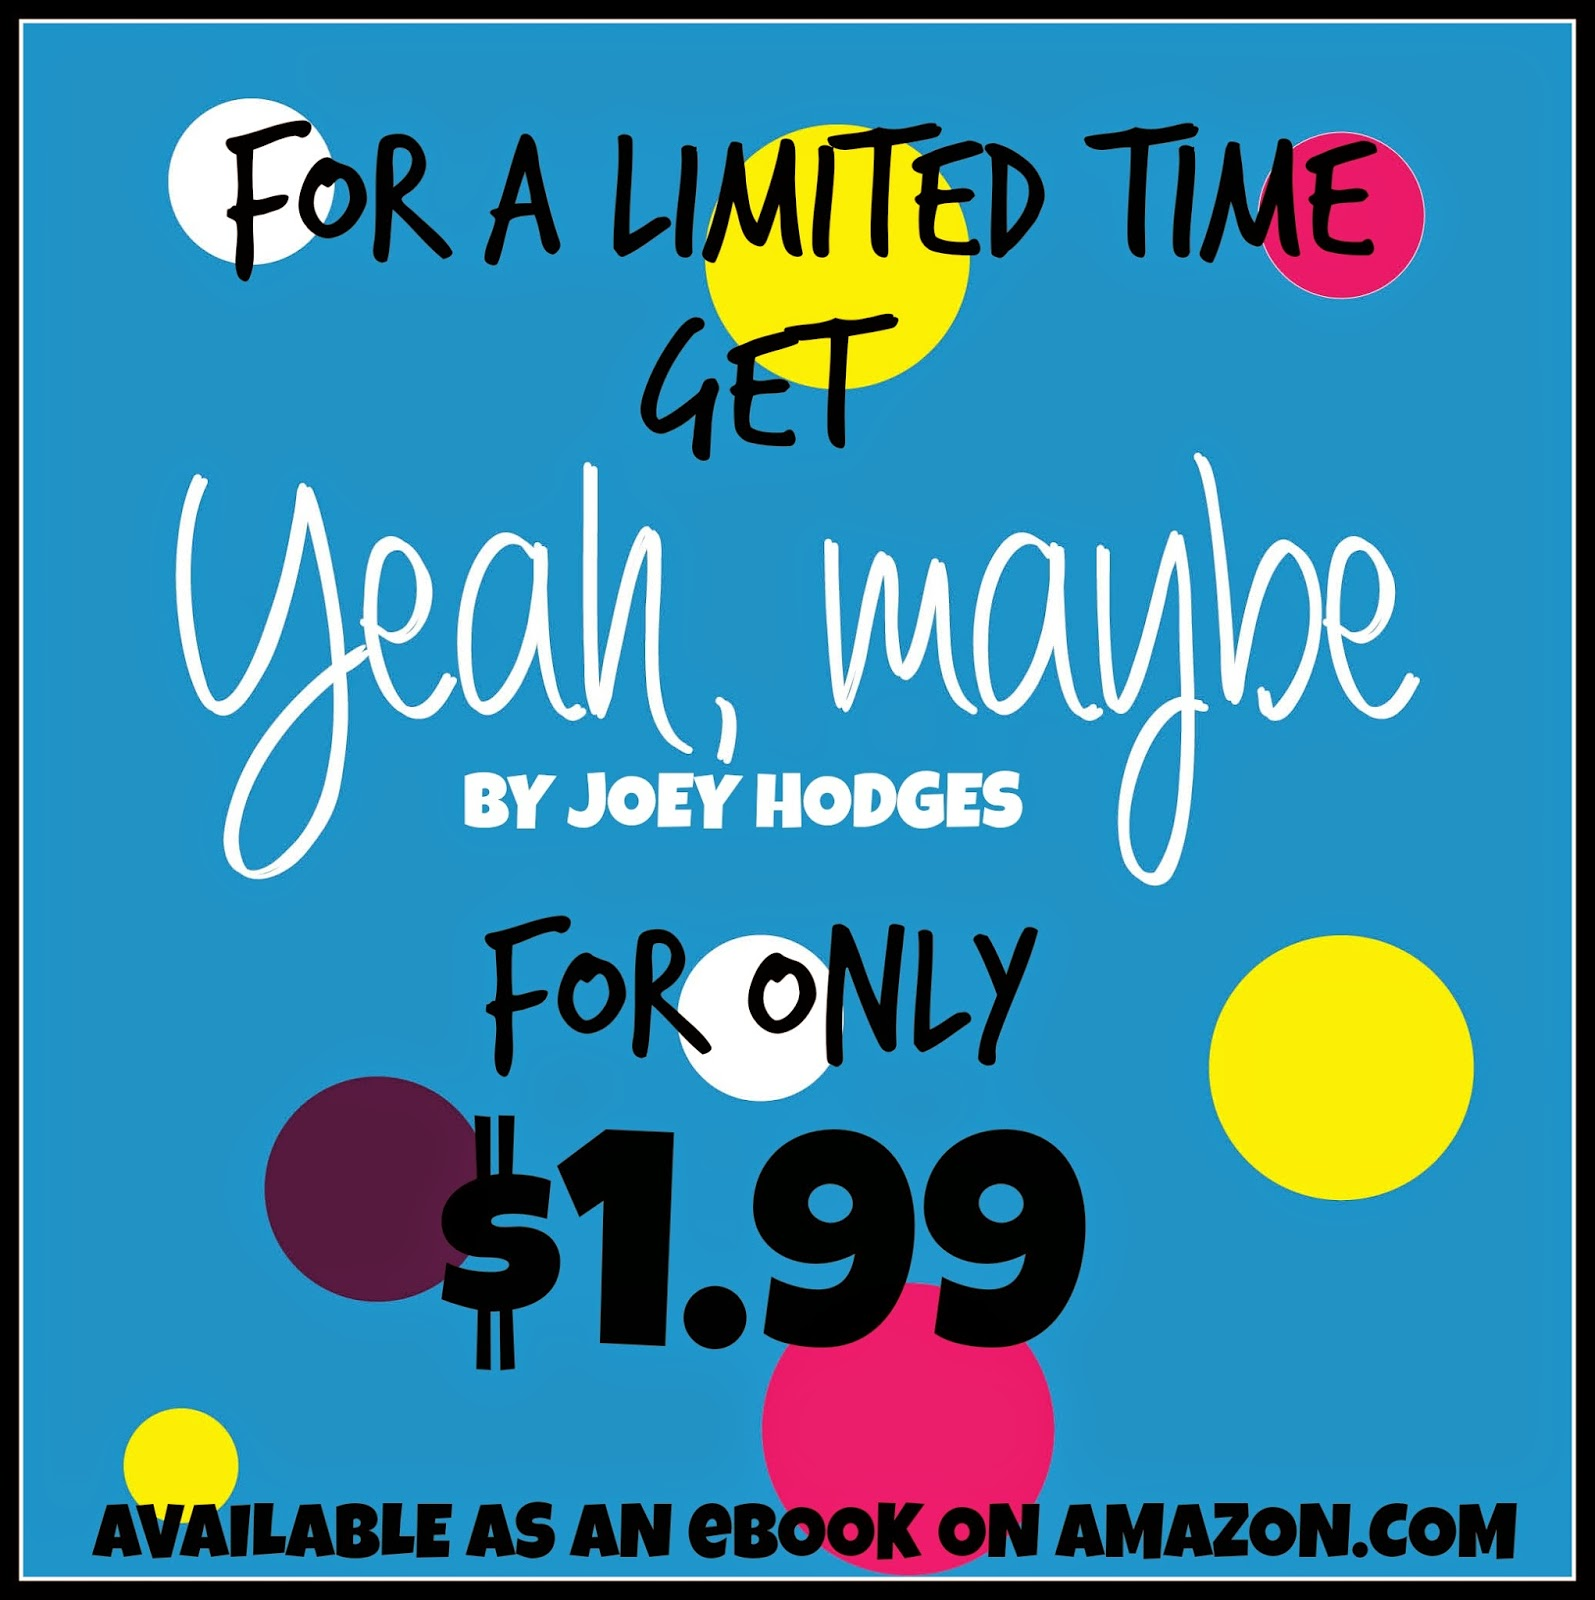 Yeah, Maybe, Joey Hodges, ebook